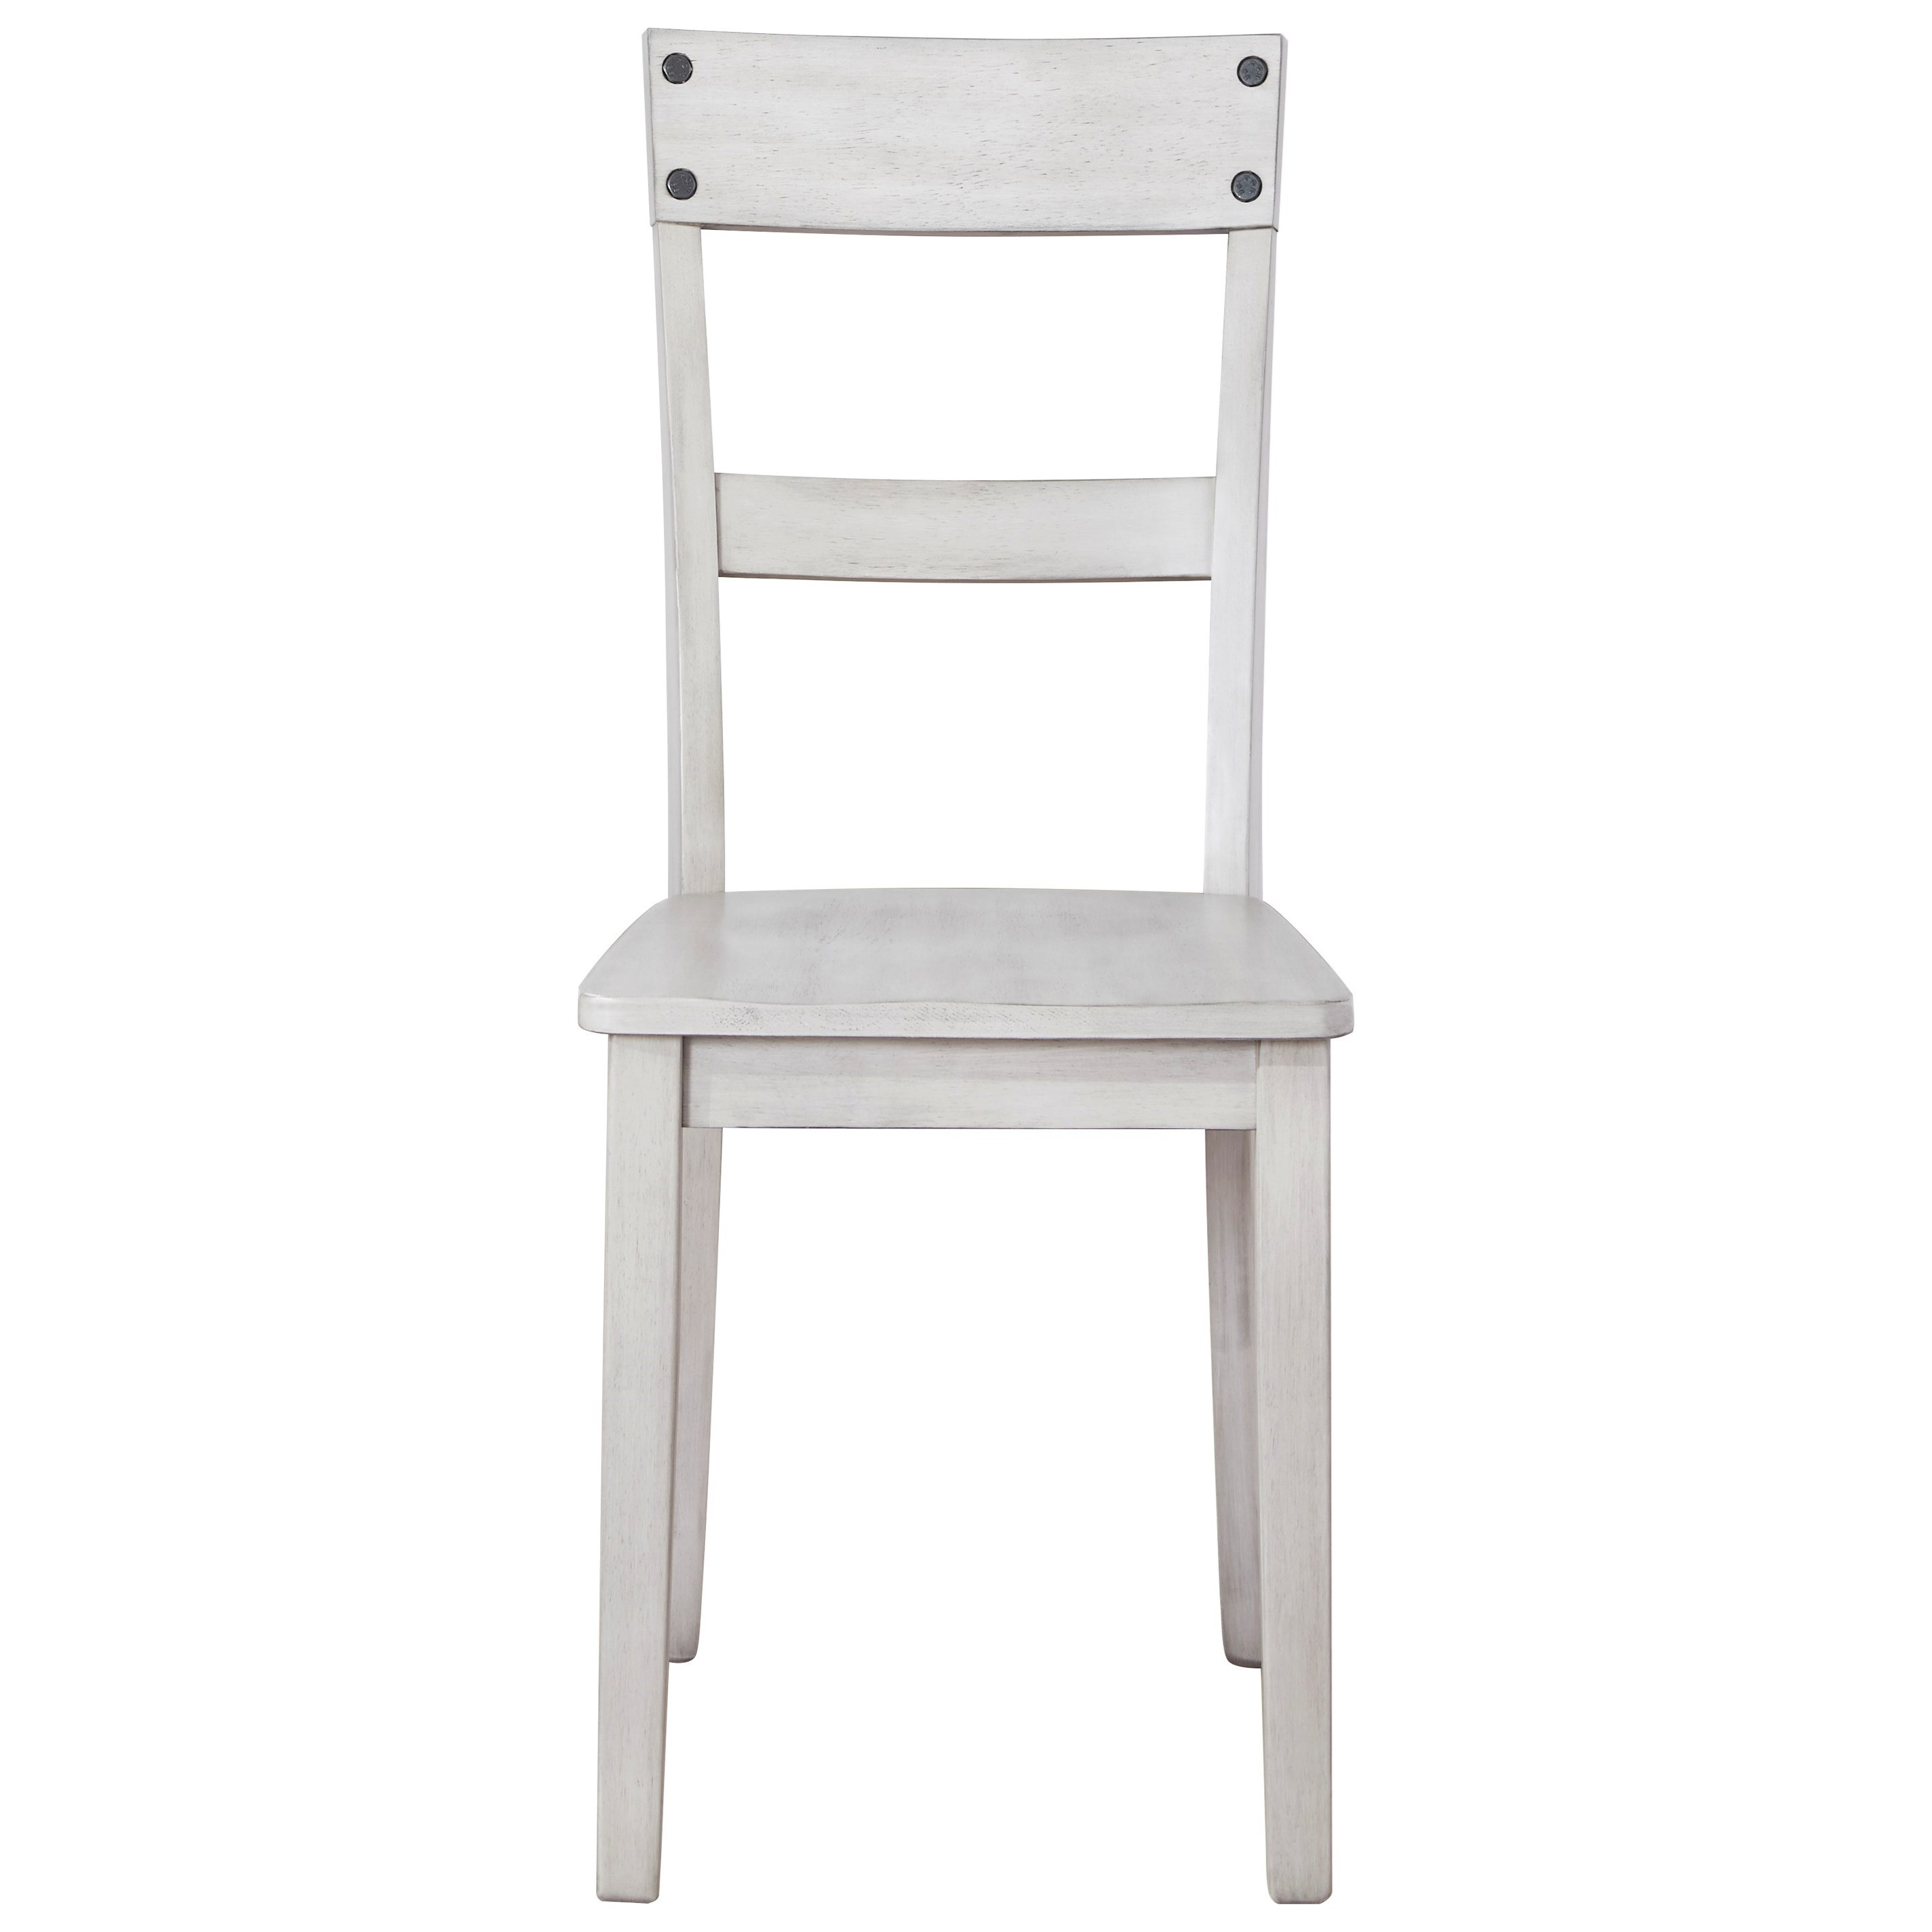 Loratti Loratti Dining Room Side Chair by Ashley at Morris Home